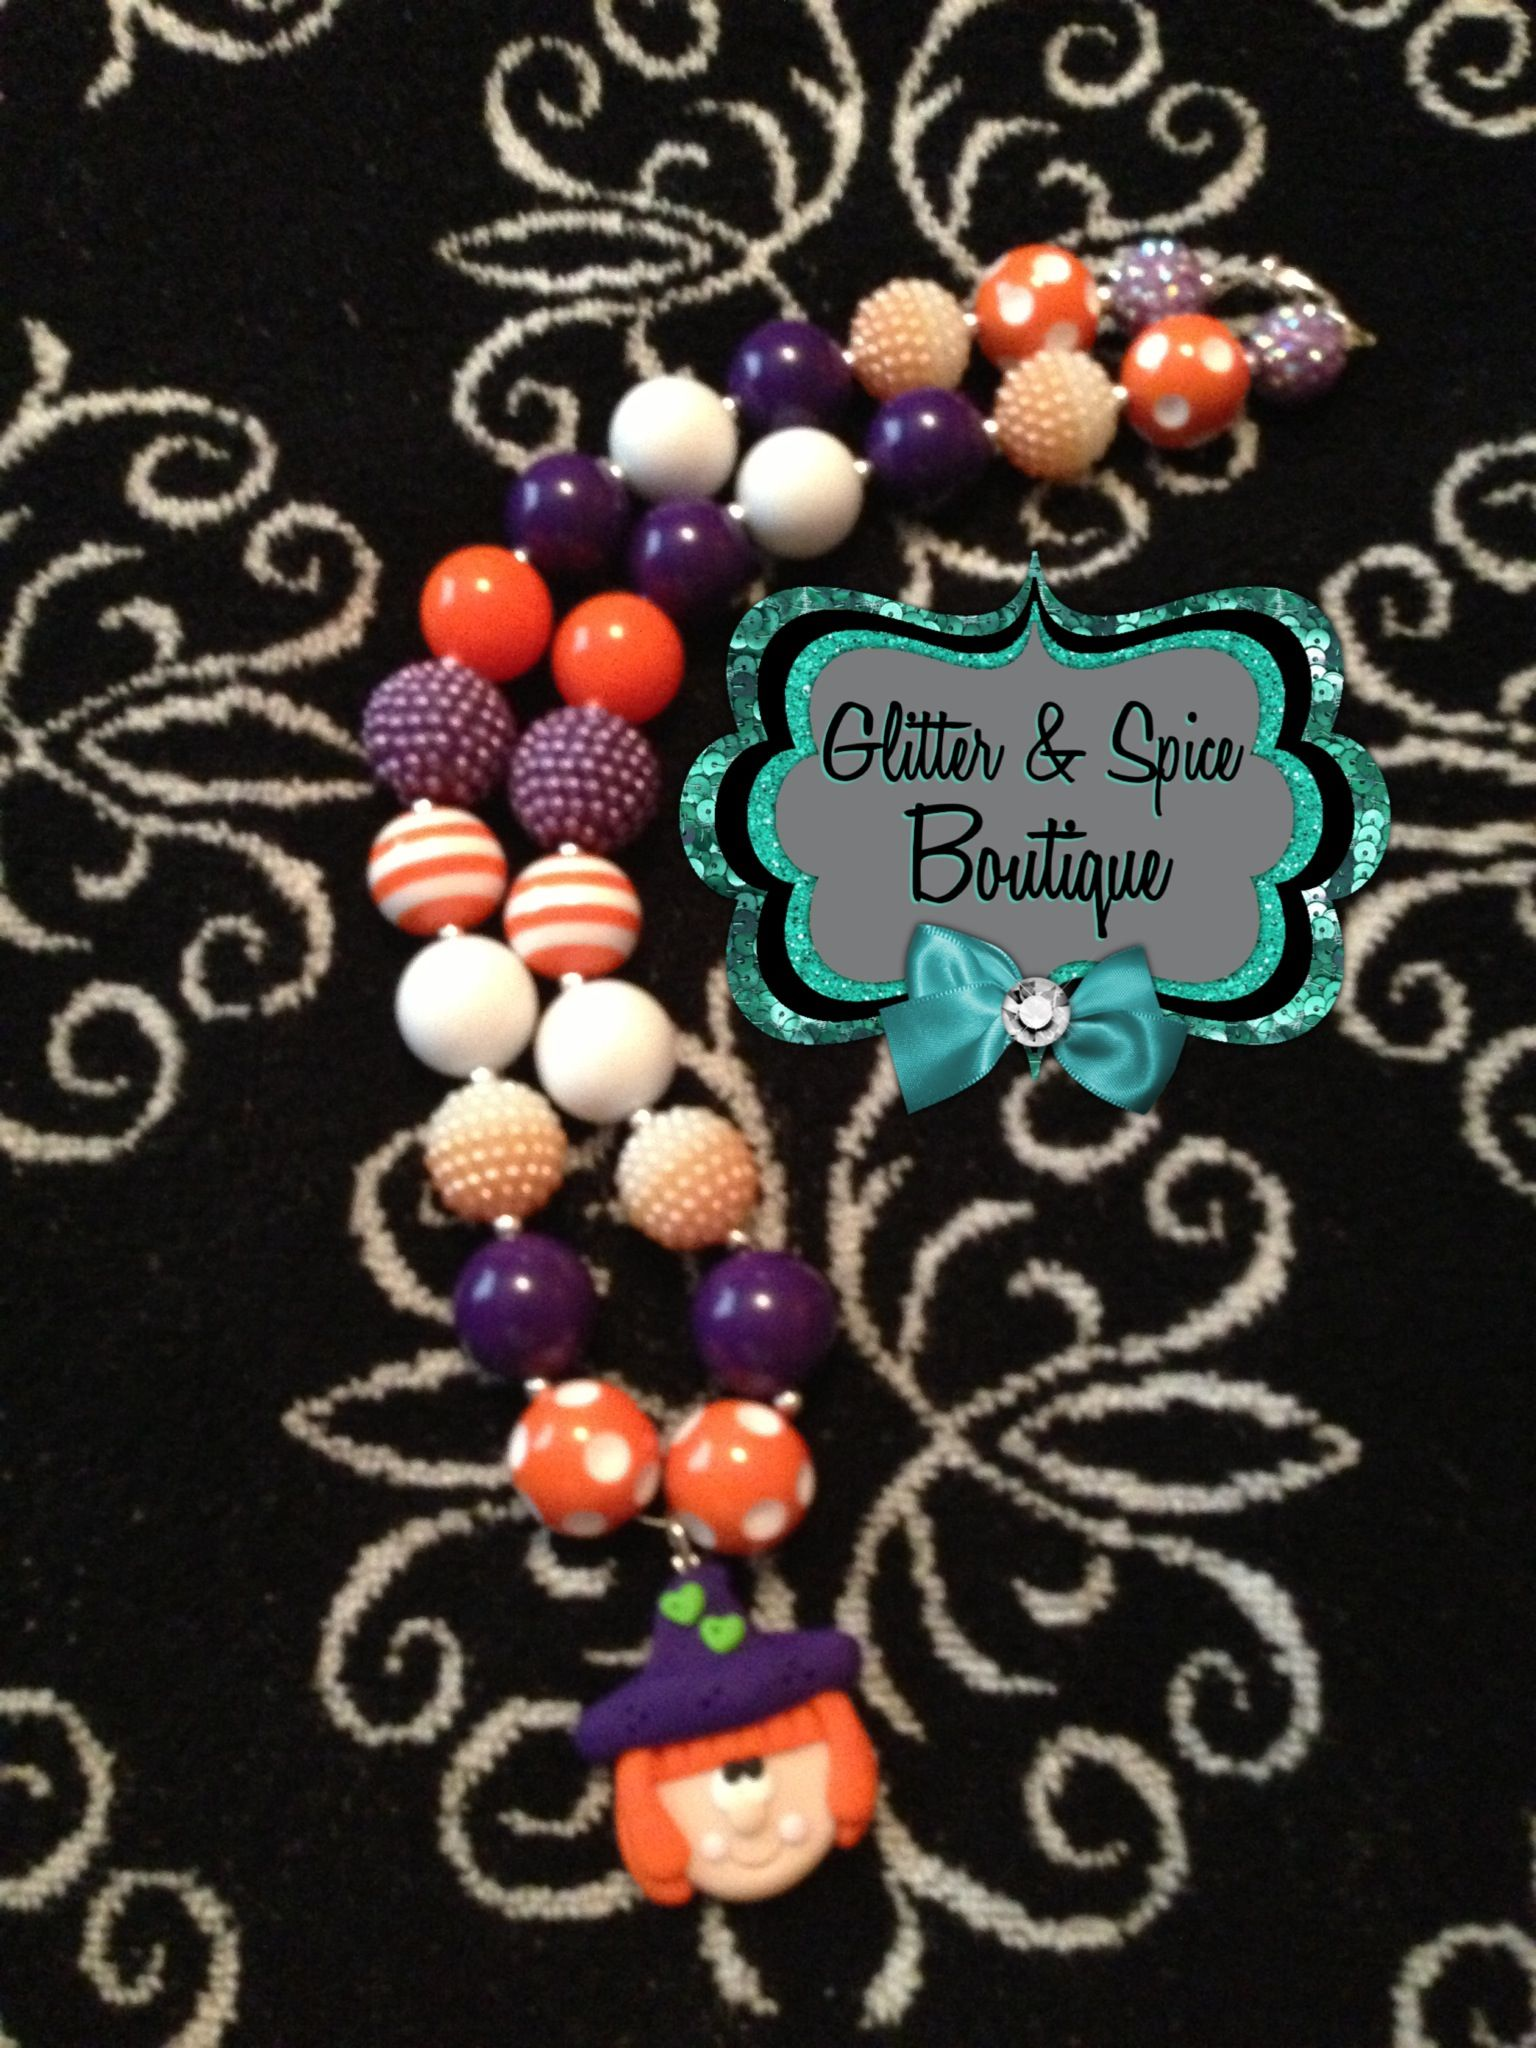 Halloween theme bubblegum necklace matching tutu coming soon! Go check it out on the Glitter & Spice Facebook page!